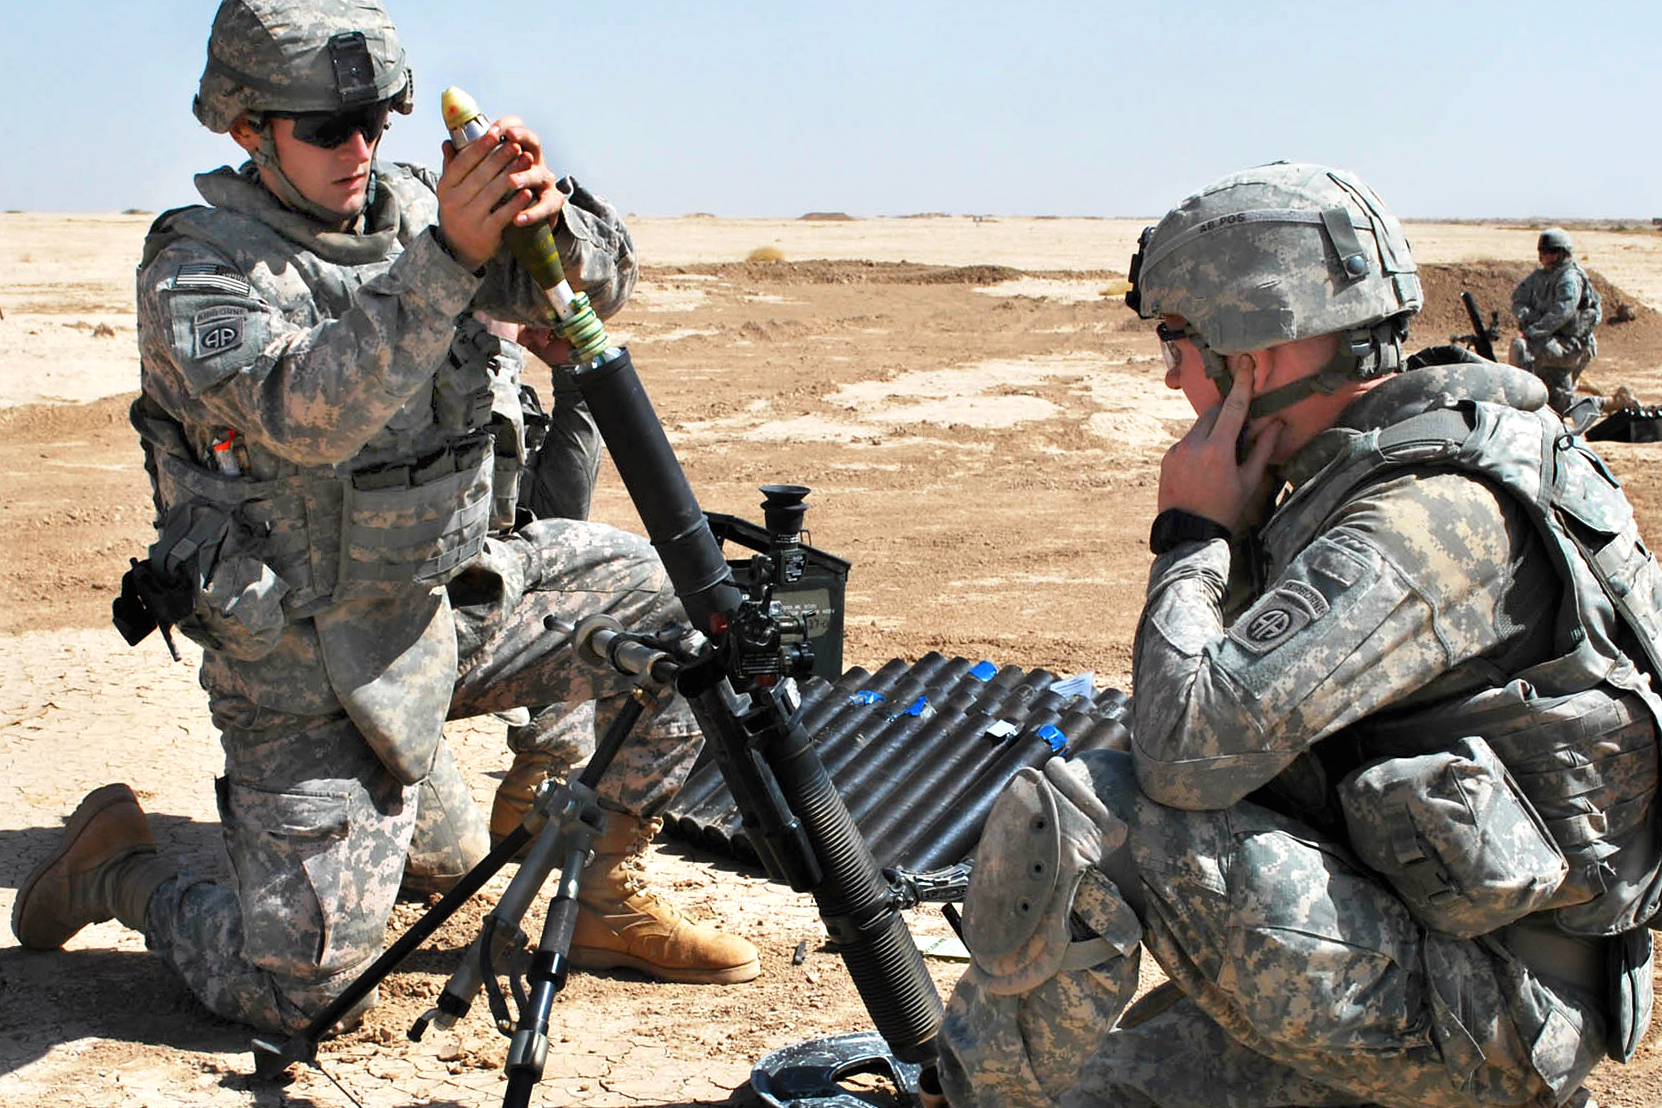 U.S. Army Pfc. Gregory Conway, left, prepares to drop a mortar into the tube during a live-fire training exercise at a range several miles north of Forward Operating Base Hammer, Iraq, Sept. 30, 2009. Conway is an indirect fire infantryman assigned to the 82nd Airborne Division's Company C, 2nd Battalion, 505th Parachute Infantry Regiment, 3rd Brigade Combat Team. (Photo by Pvt. Jared N. Gehmann)